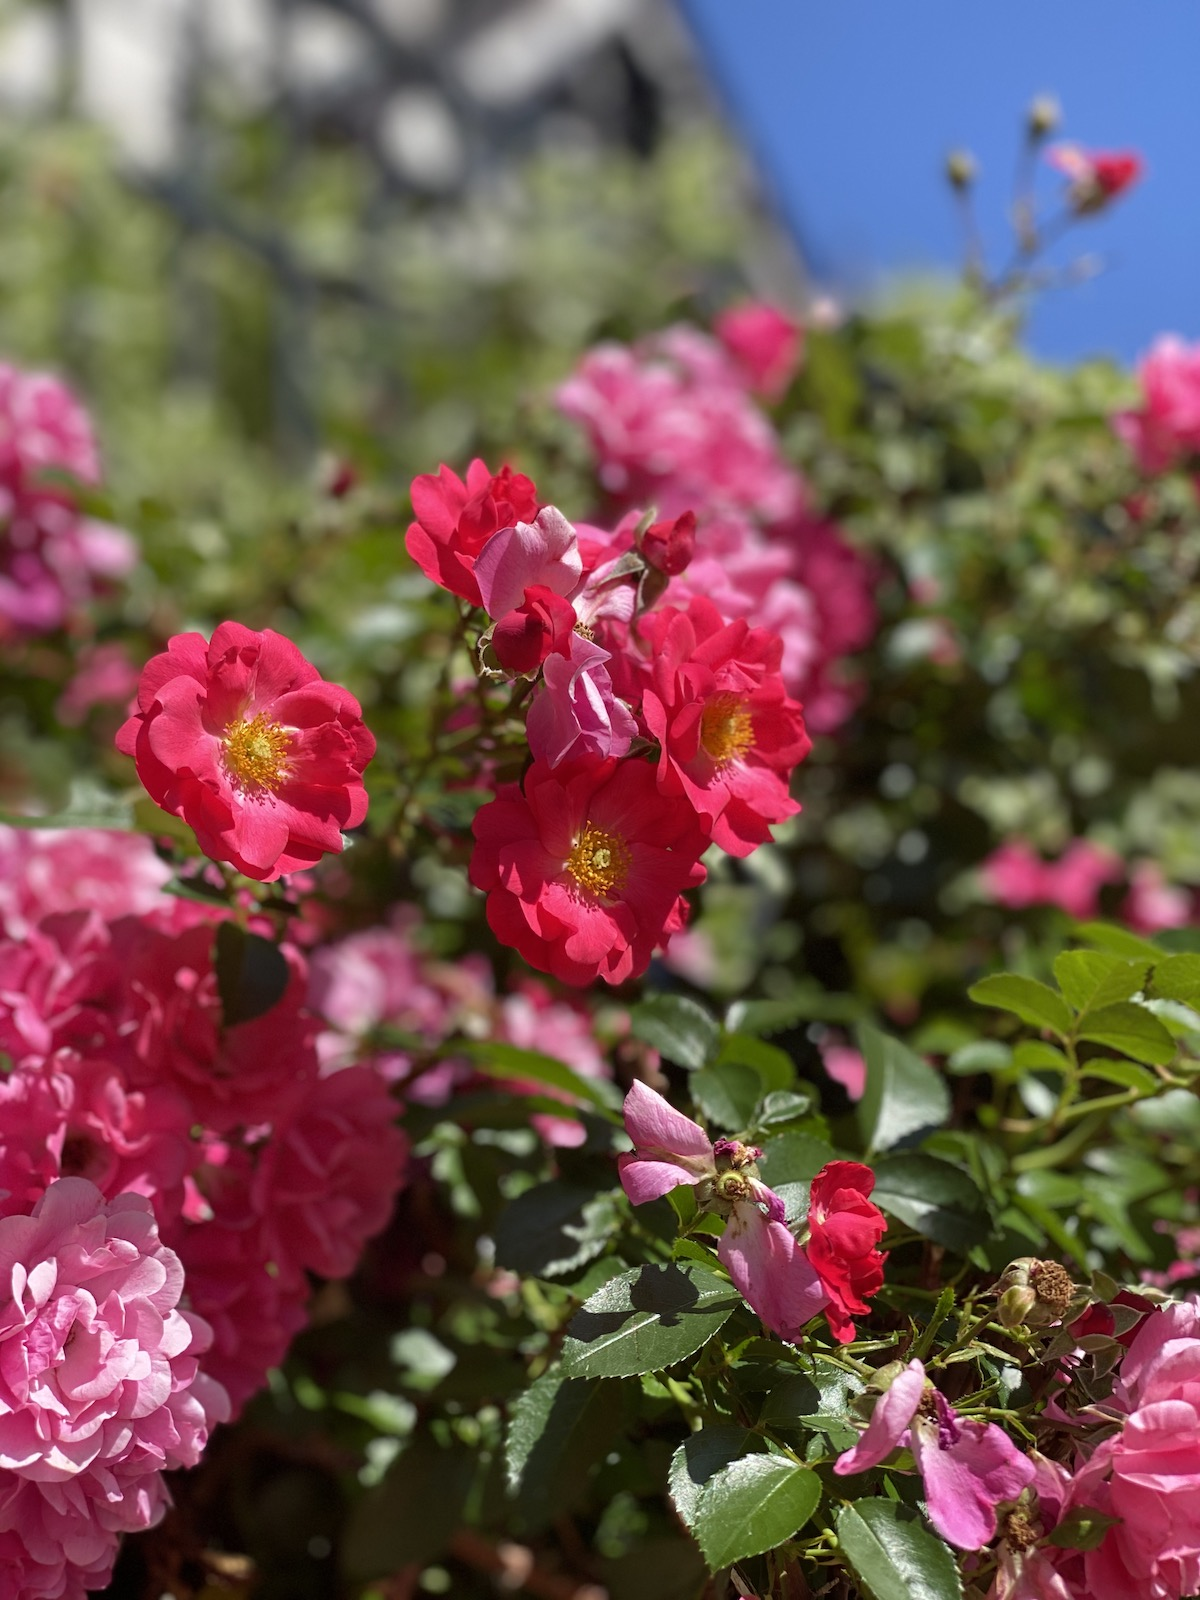 Flower-Filled Foreground - Pink Flowers